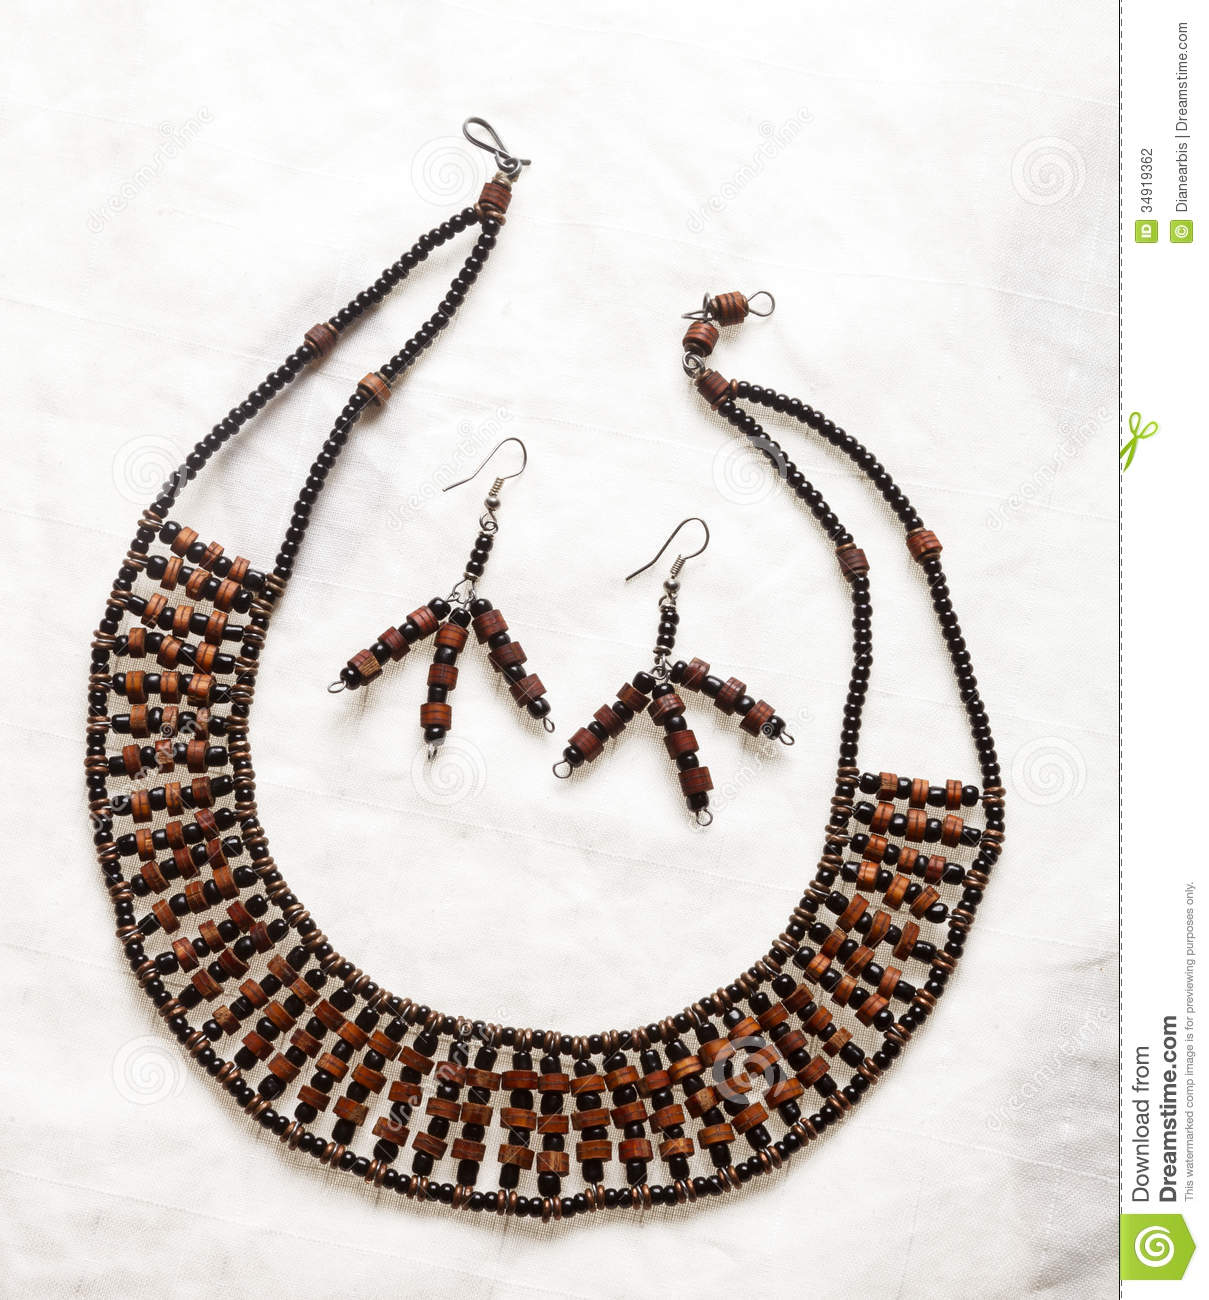 South african jewelry stock photo image of repetition for How to make african jewelry crafts